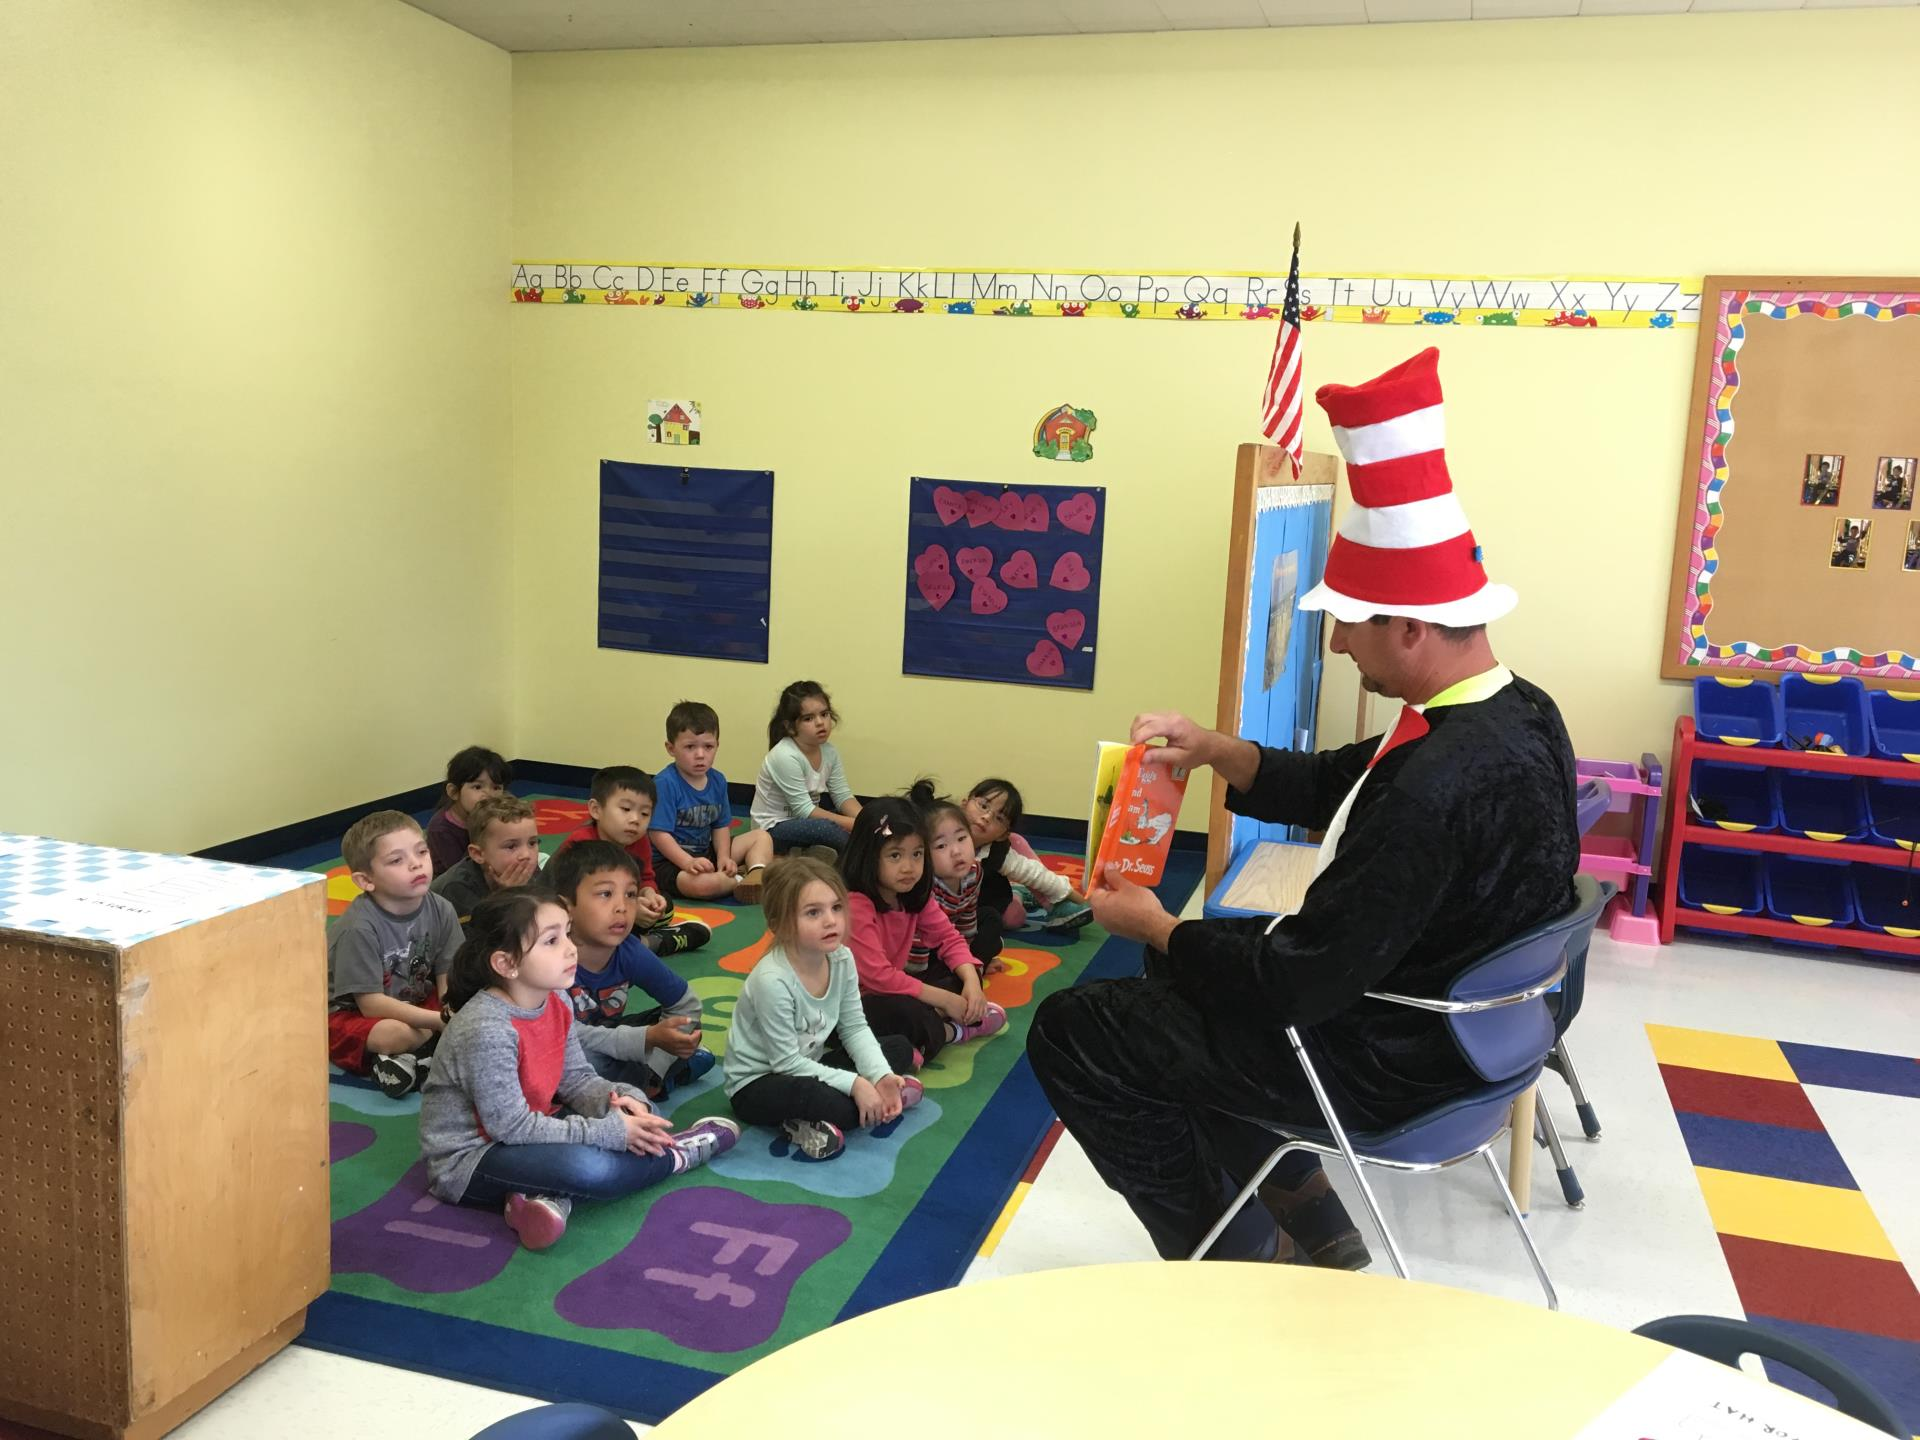 Cat In The Hat visits Adventures in Learning and read Green Eggs & Ham